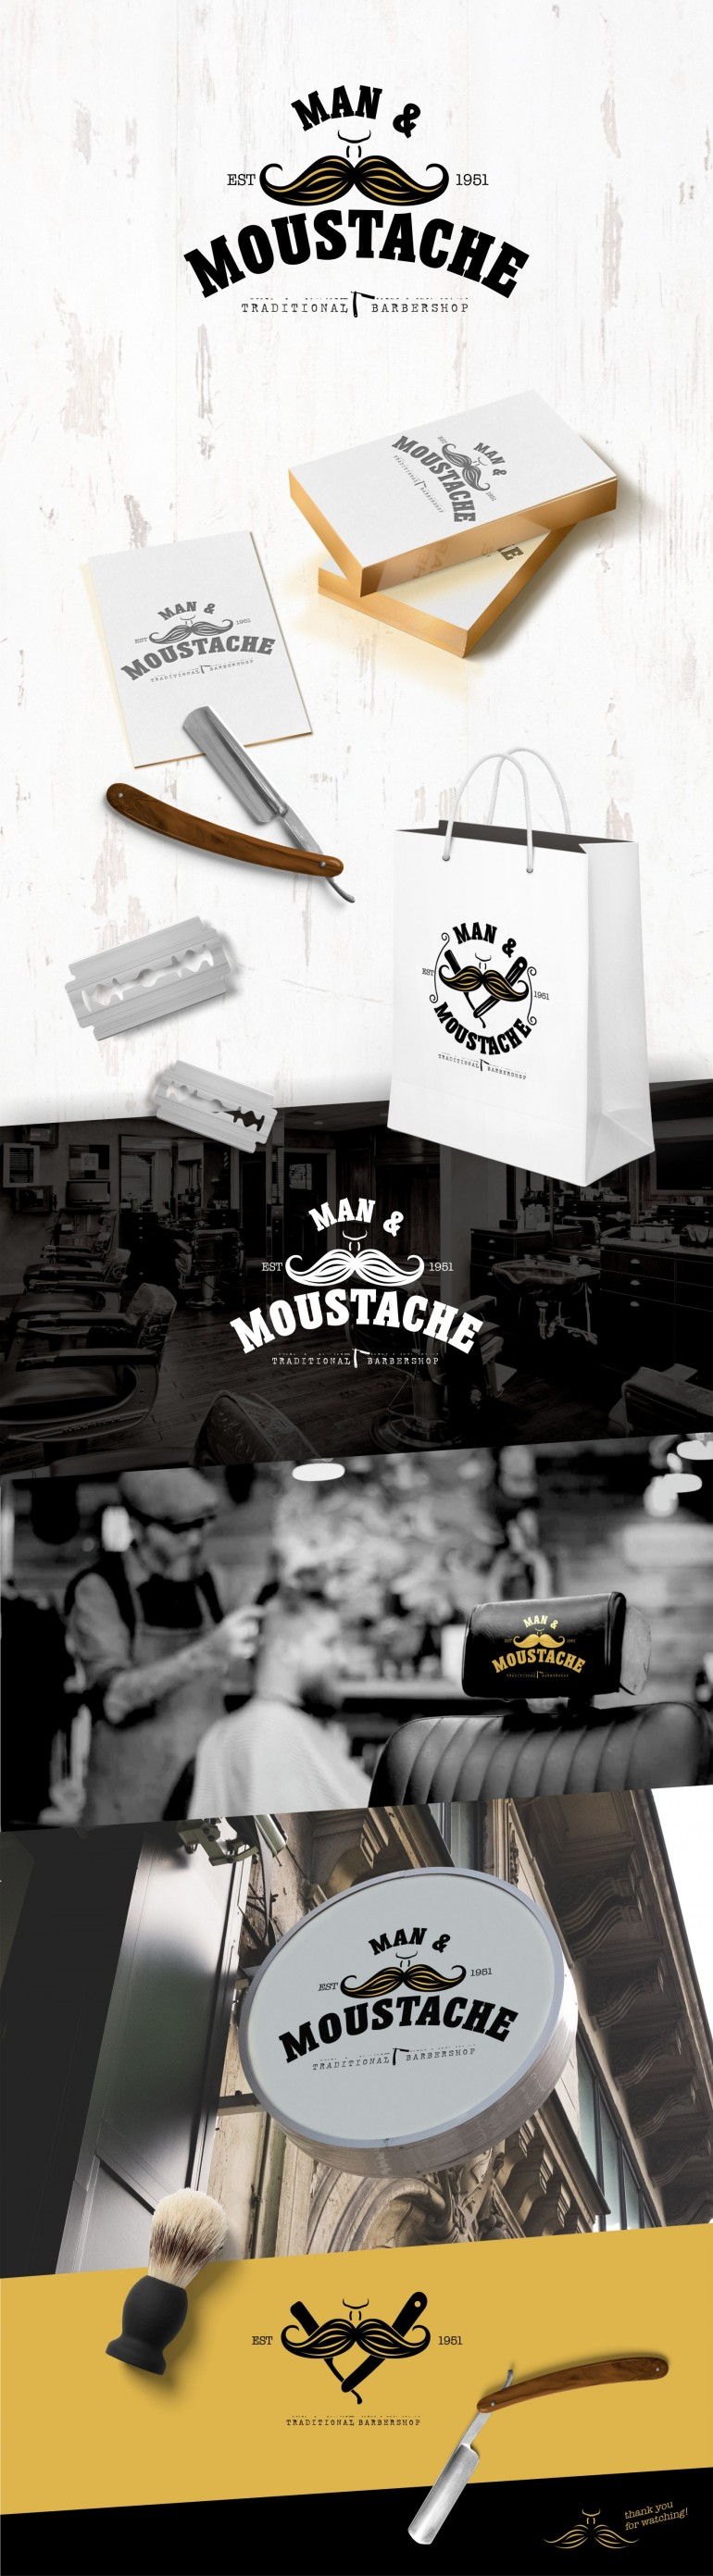 Logo branding for Man & Moystache (Available for sale).